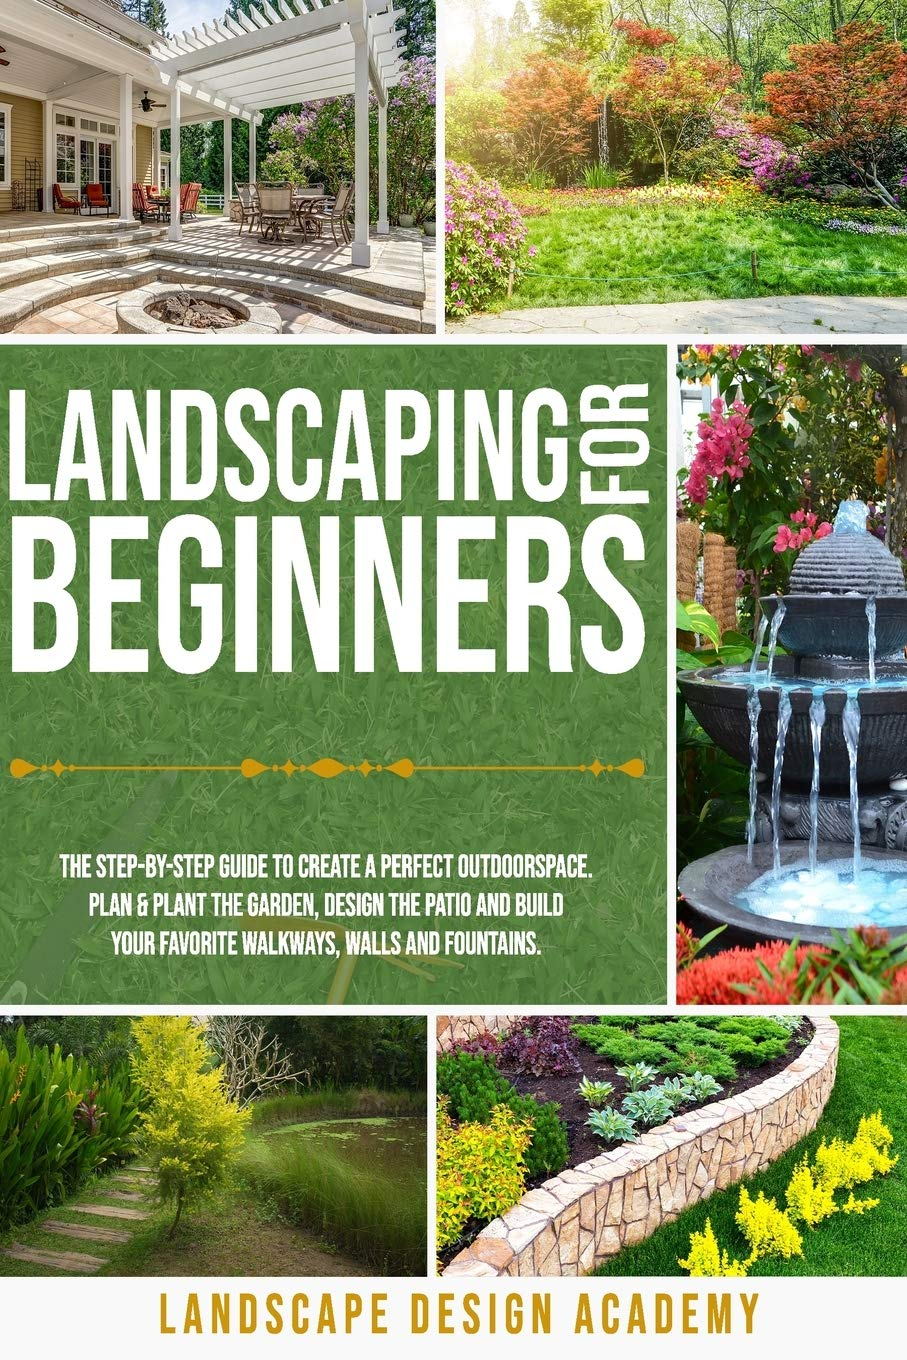 LANDSCAPING FOR BEGINNERS: THE STEP-BY-STEP GUIDE TO CREATE A